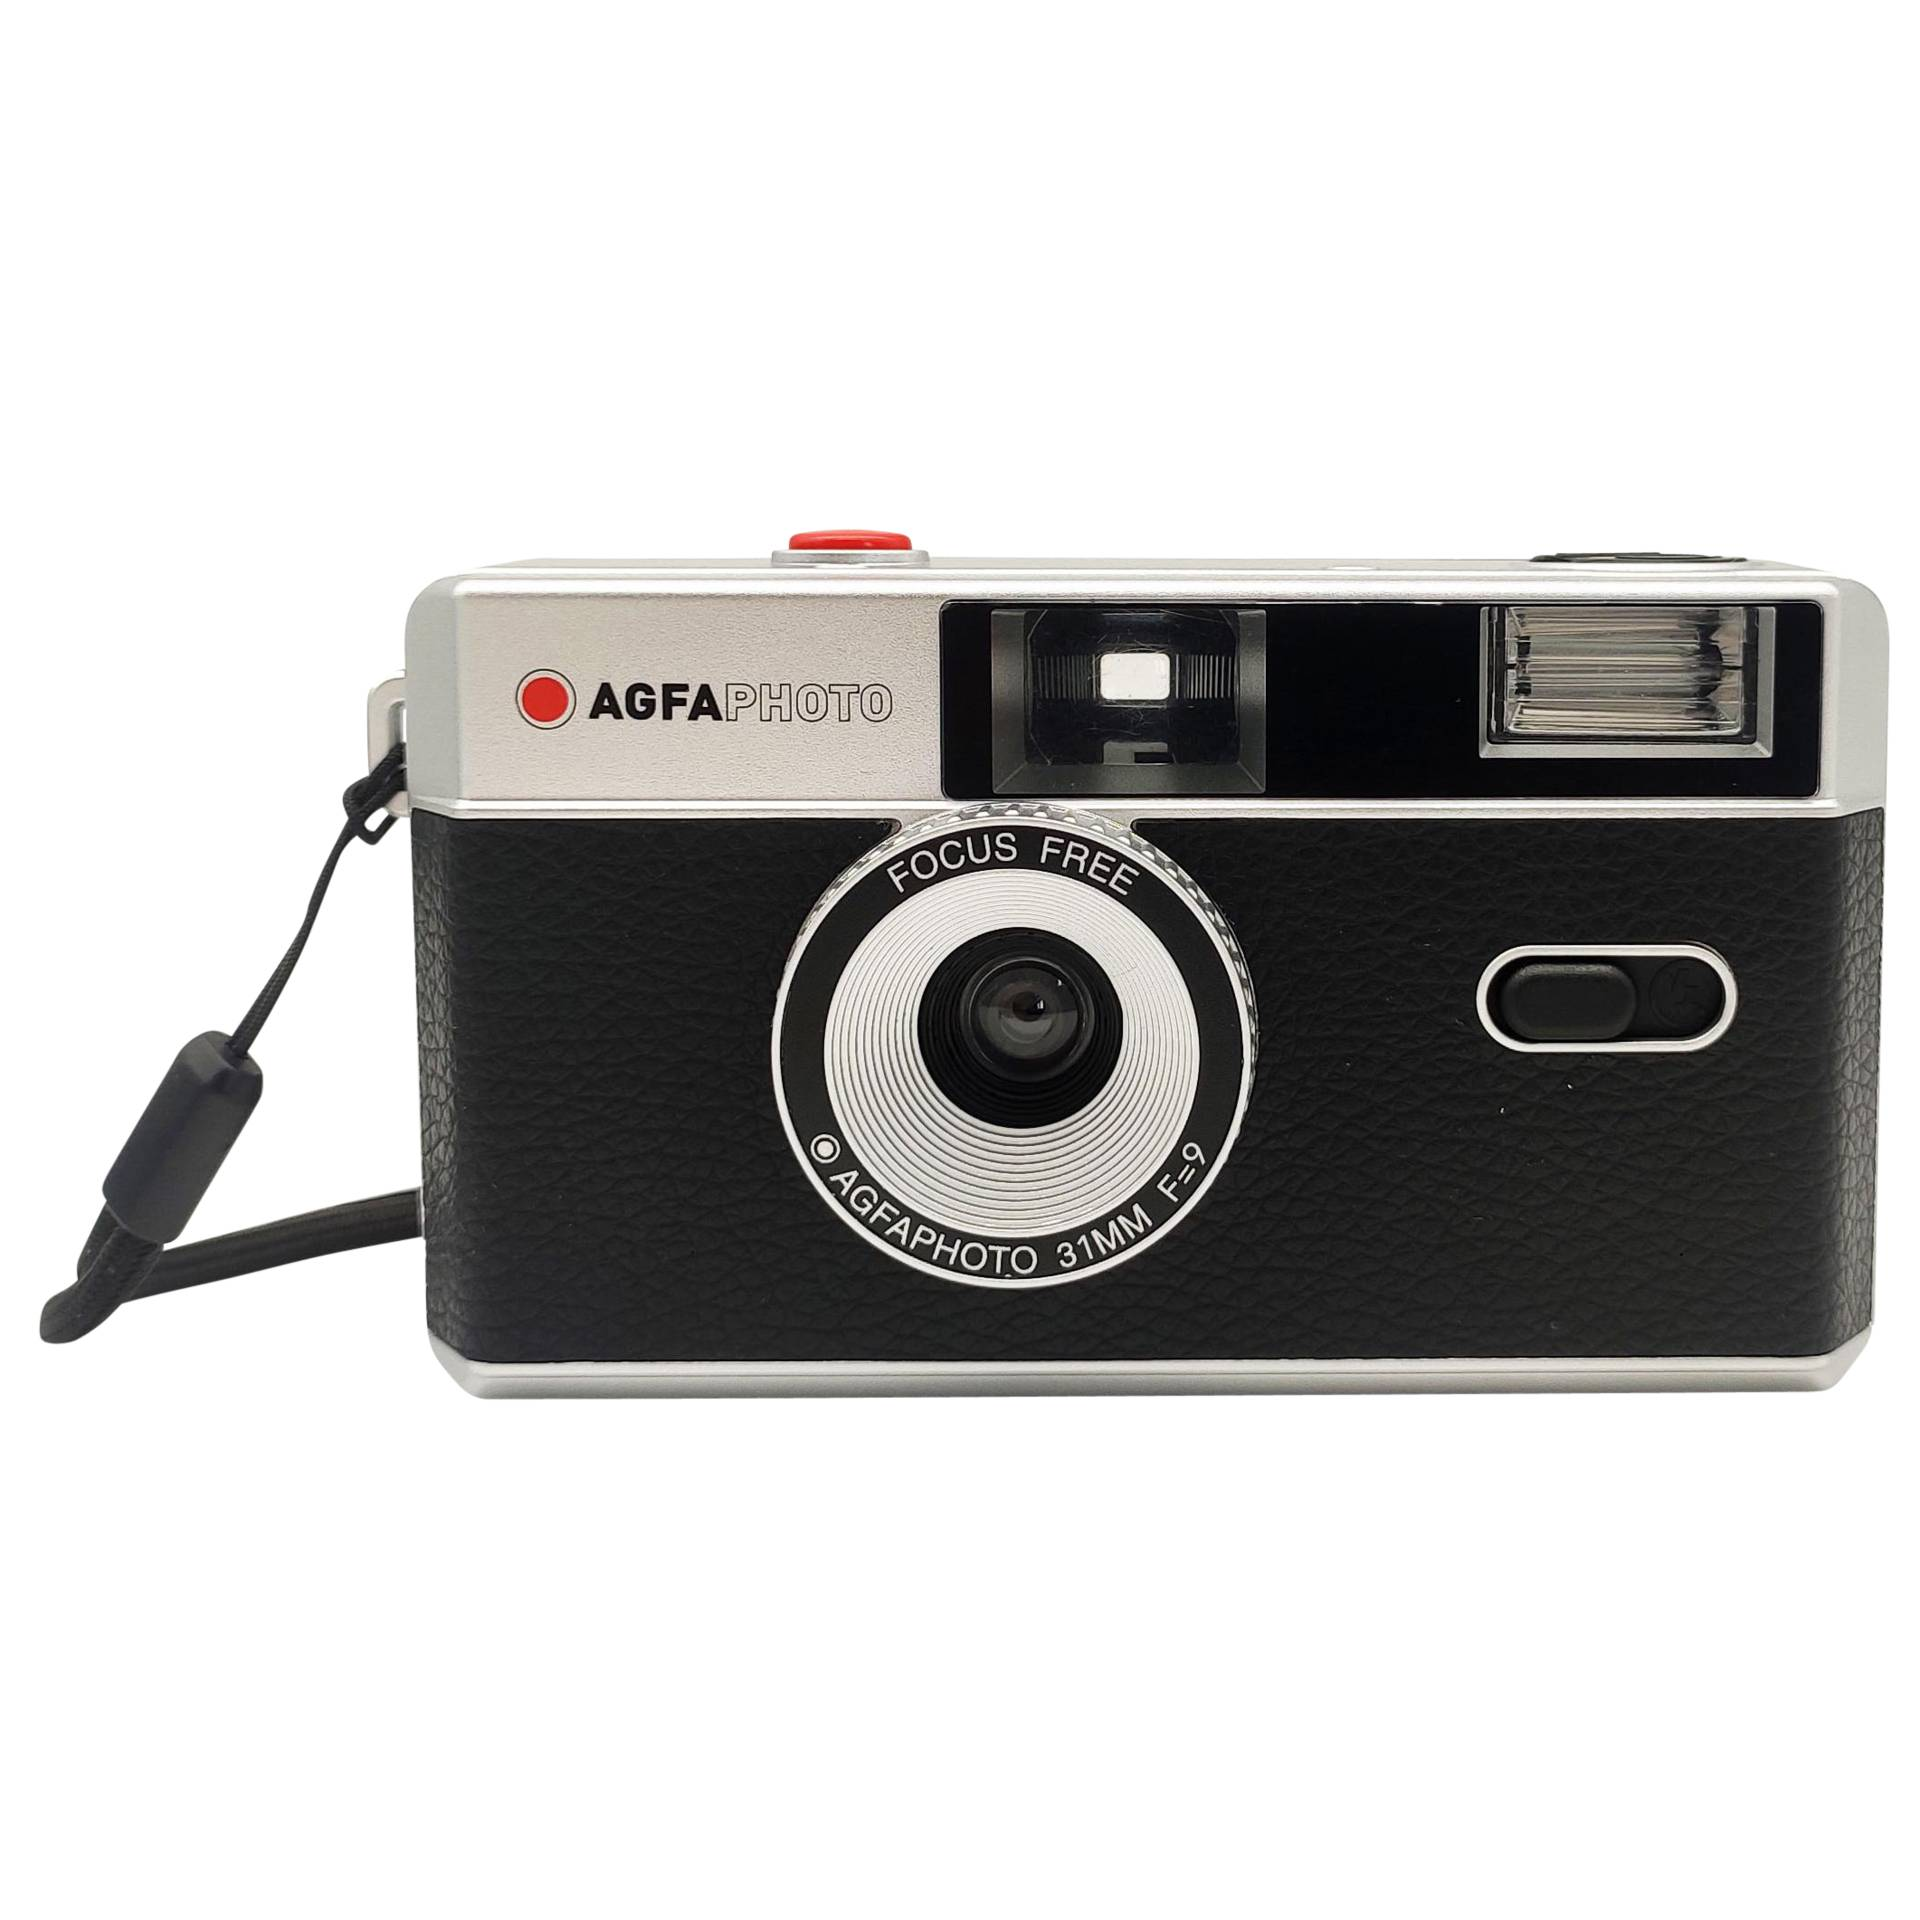 Agfaphoto Reusable Photo Camera 35mm Black